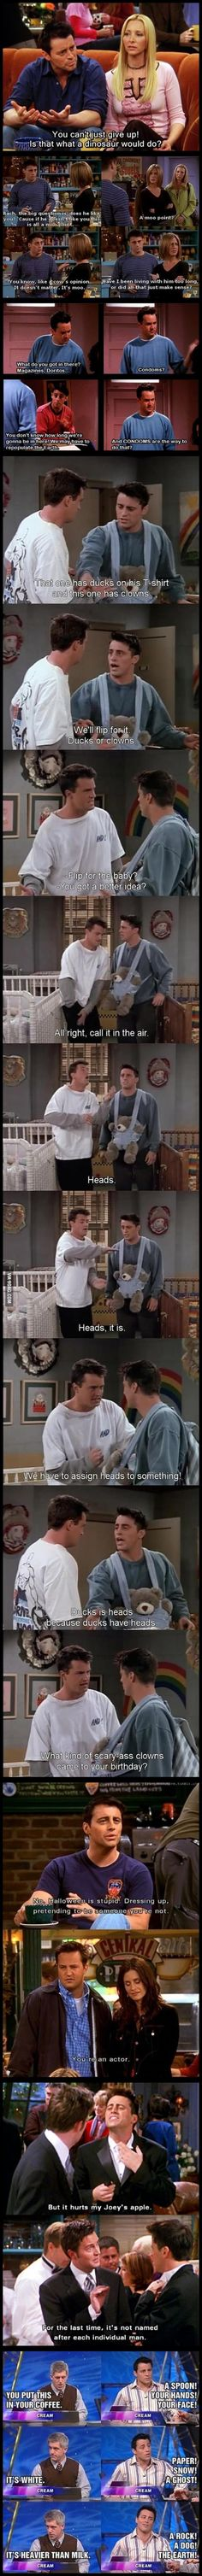 The Logic Of Joey Tribbiani